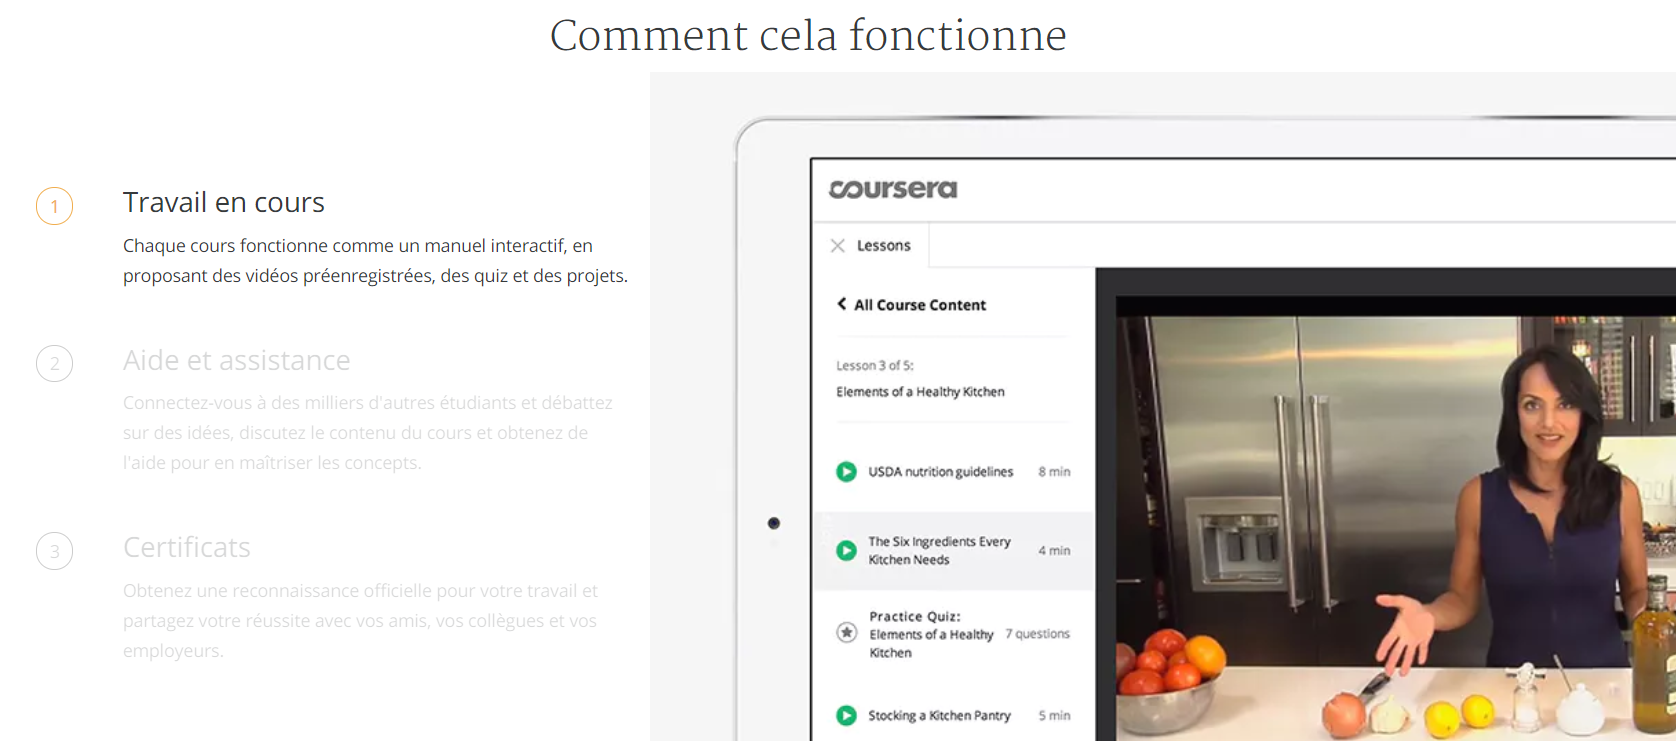 coursera les cours mooc